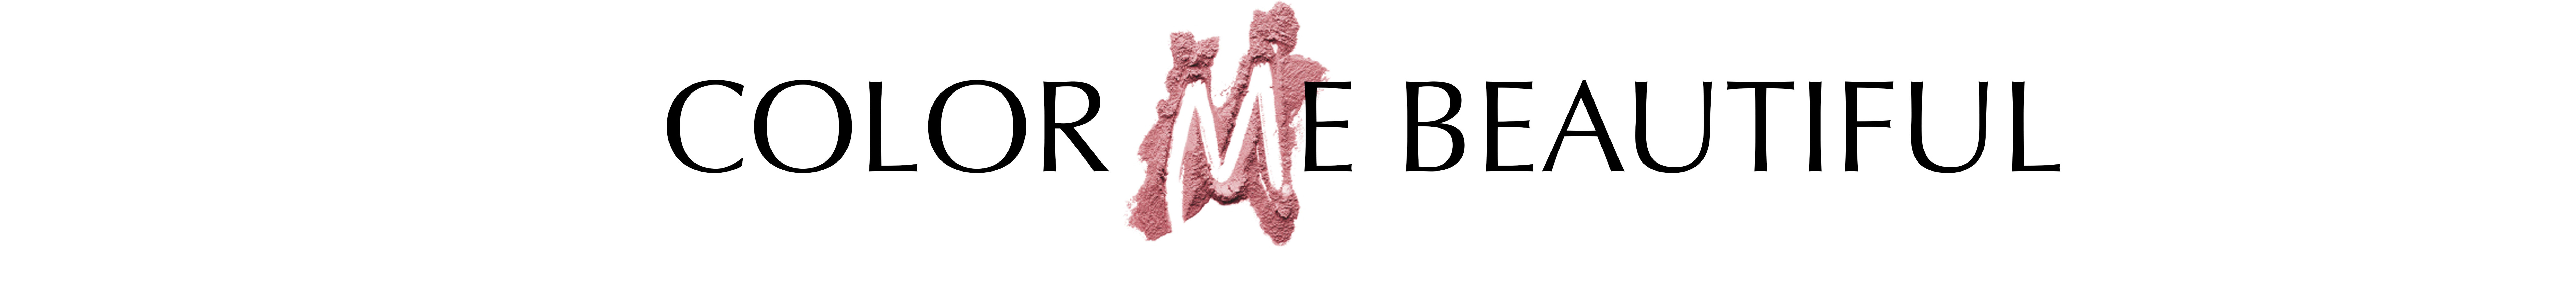 Color Me Beautiful Cosmetics and Skincare